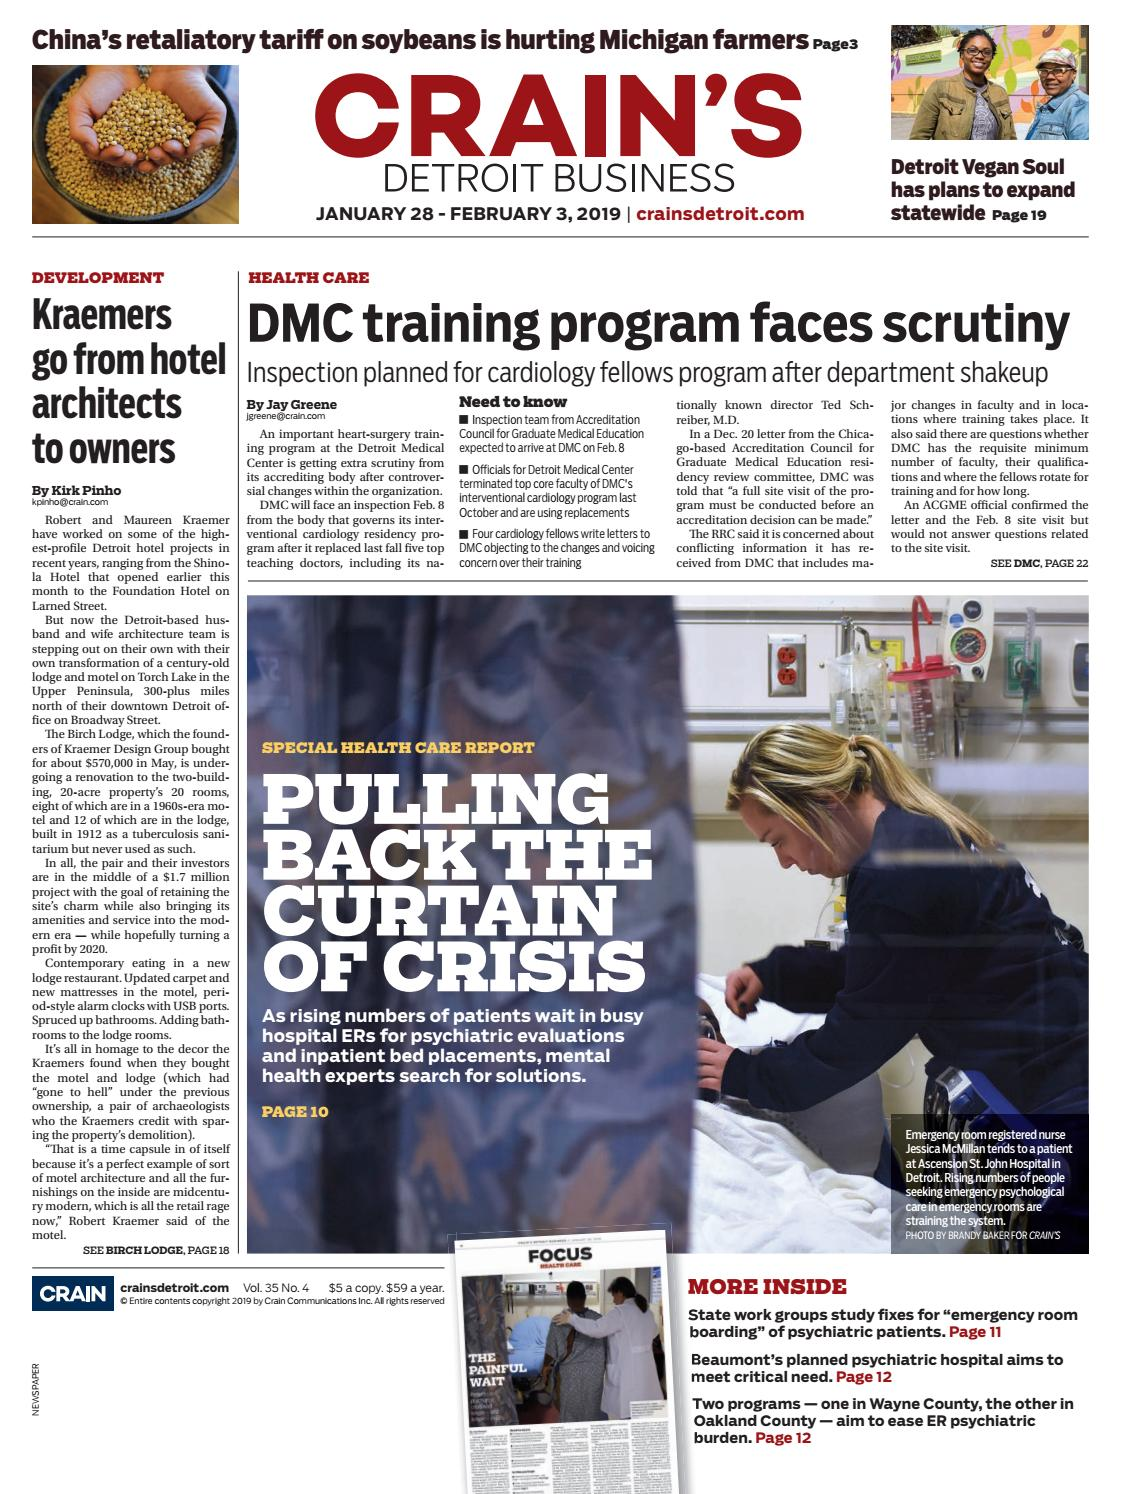 Crain's Detroit Business, Jan  28, 2019 issue by Crain's